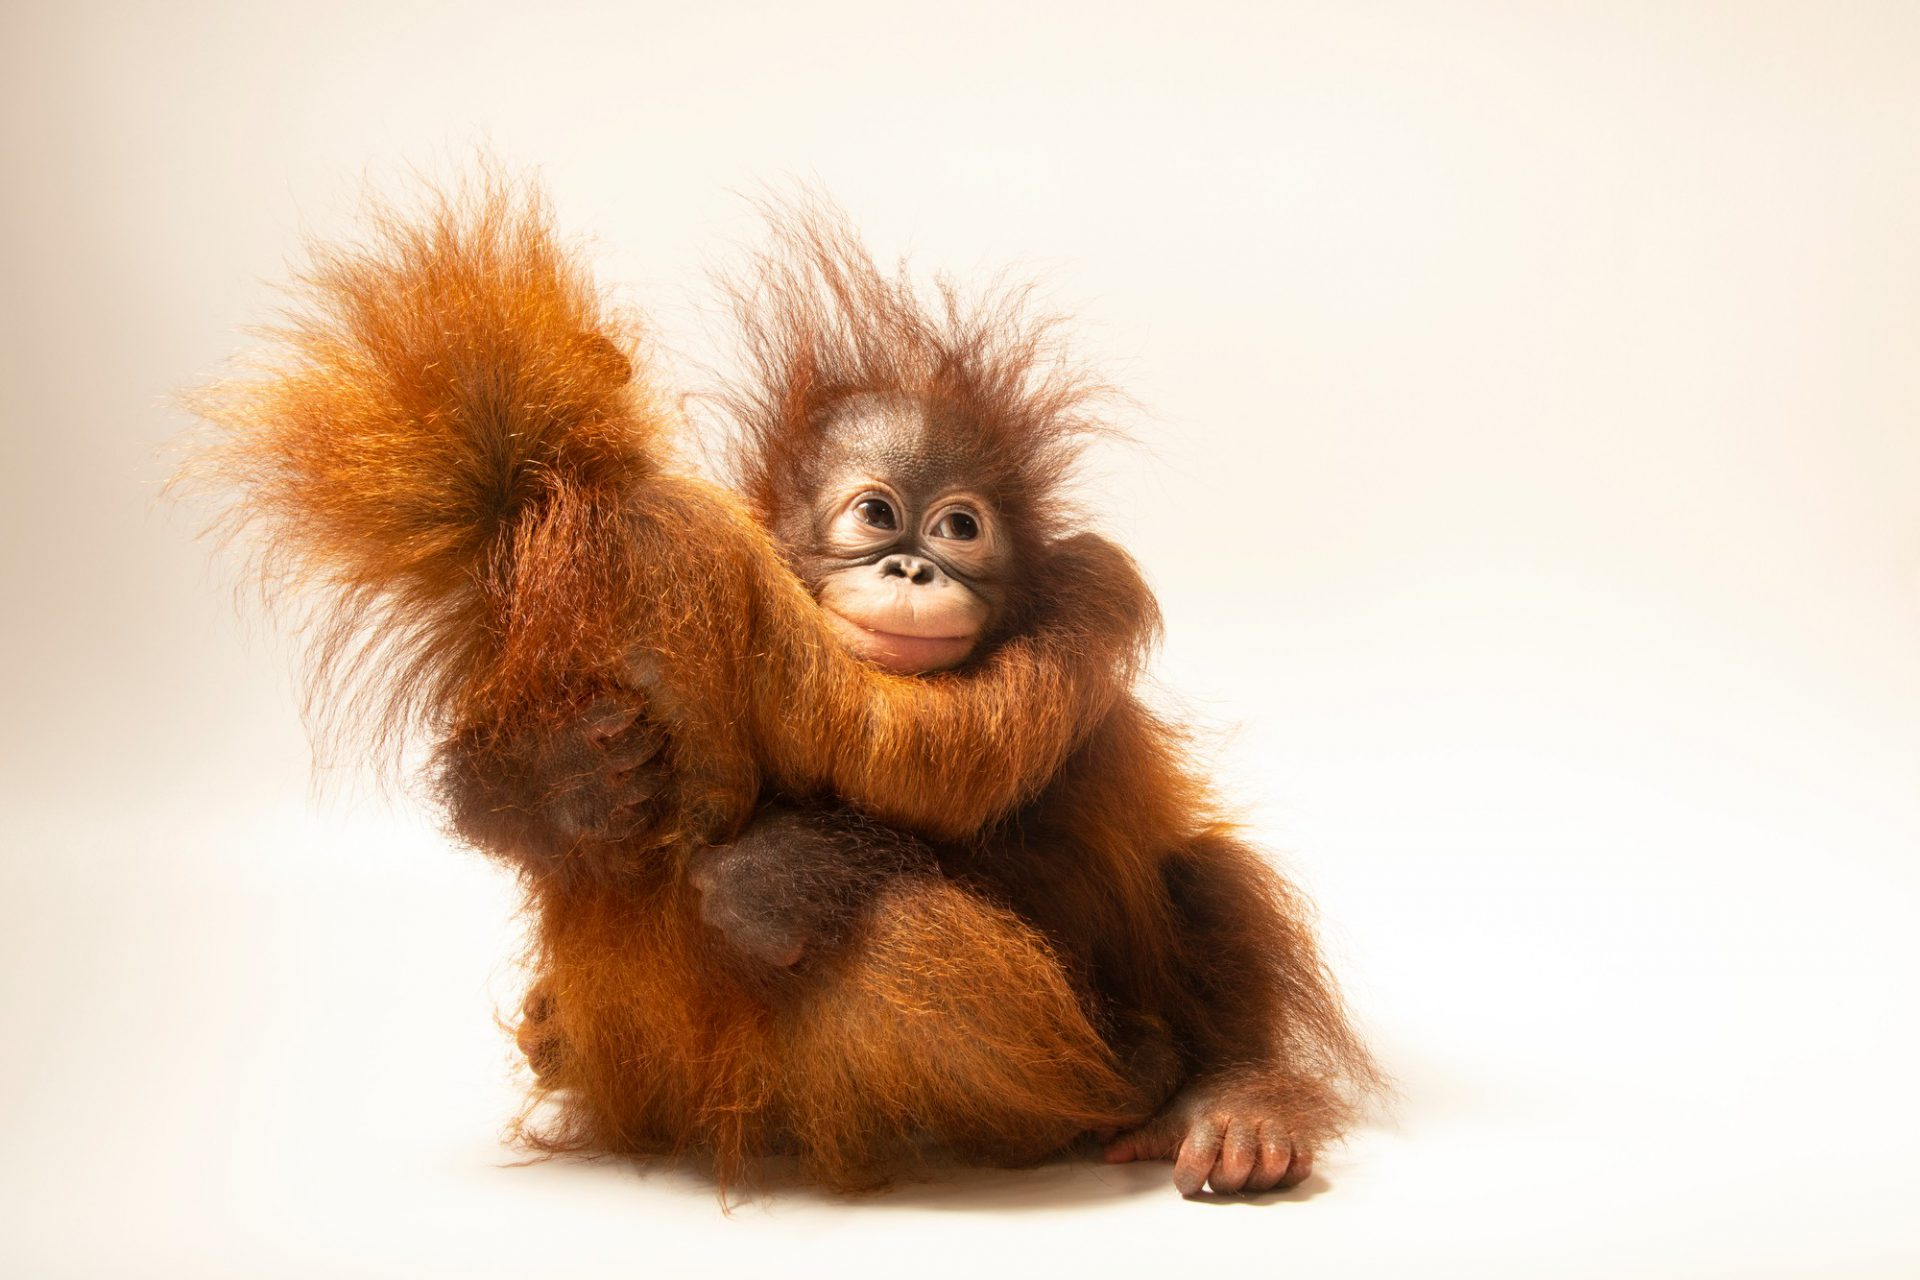 """D.J. is an 11-month-old Sumatran orangutan (Pongo abelii) and Dirgahayu """"Ayu"""" is an 11-month-old Bornean orangutan (Pongo pygmaeus). Unfortunately, both species are critically endangered, in large part due to the palm oil crisis. Both of these juvenile primates are cared for by the Taman Safari in Bogor, West Java, Indonesia."""